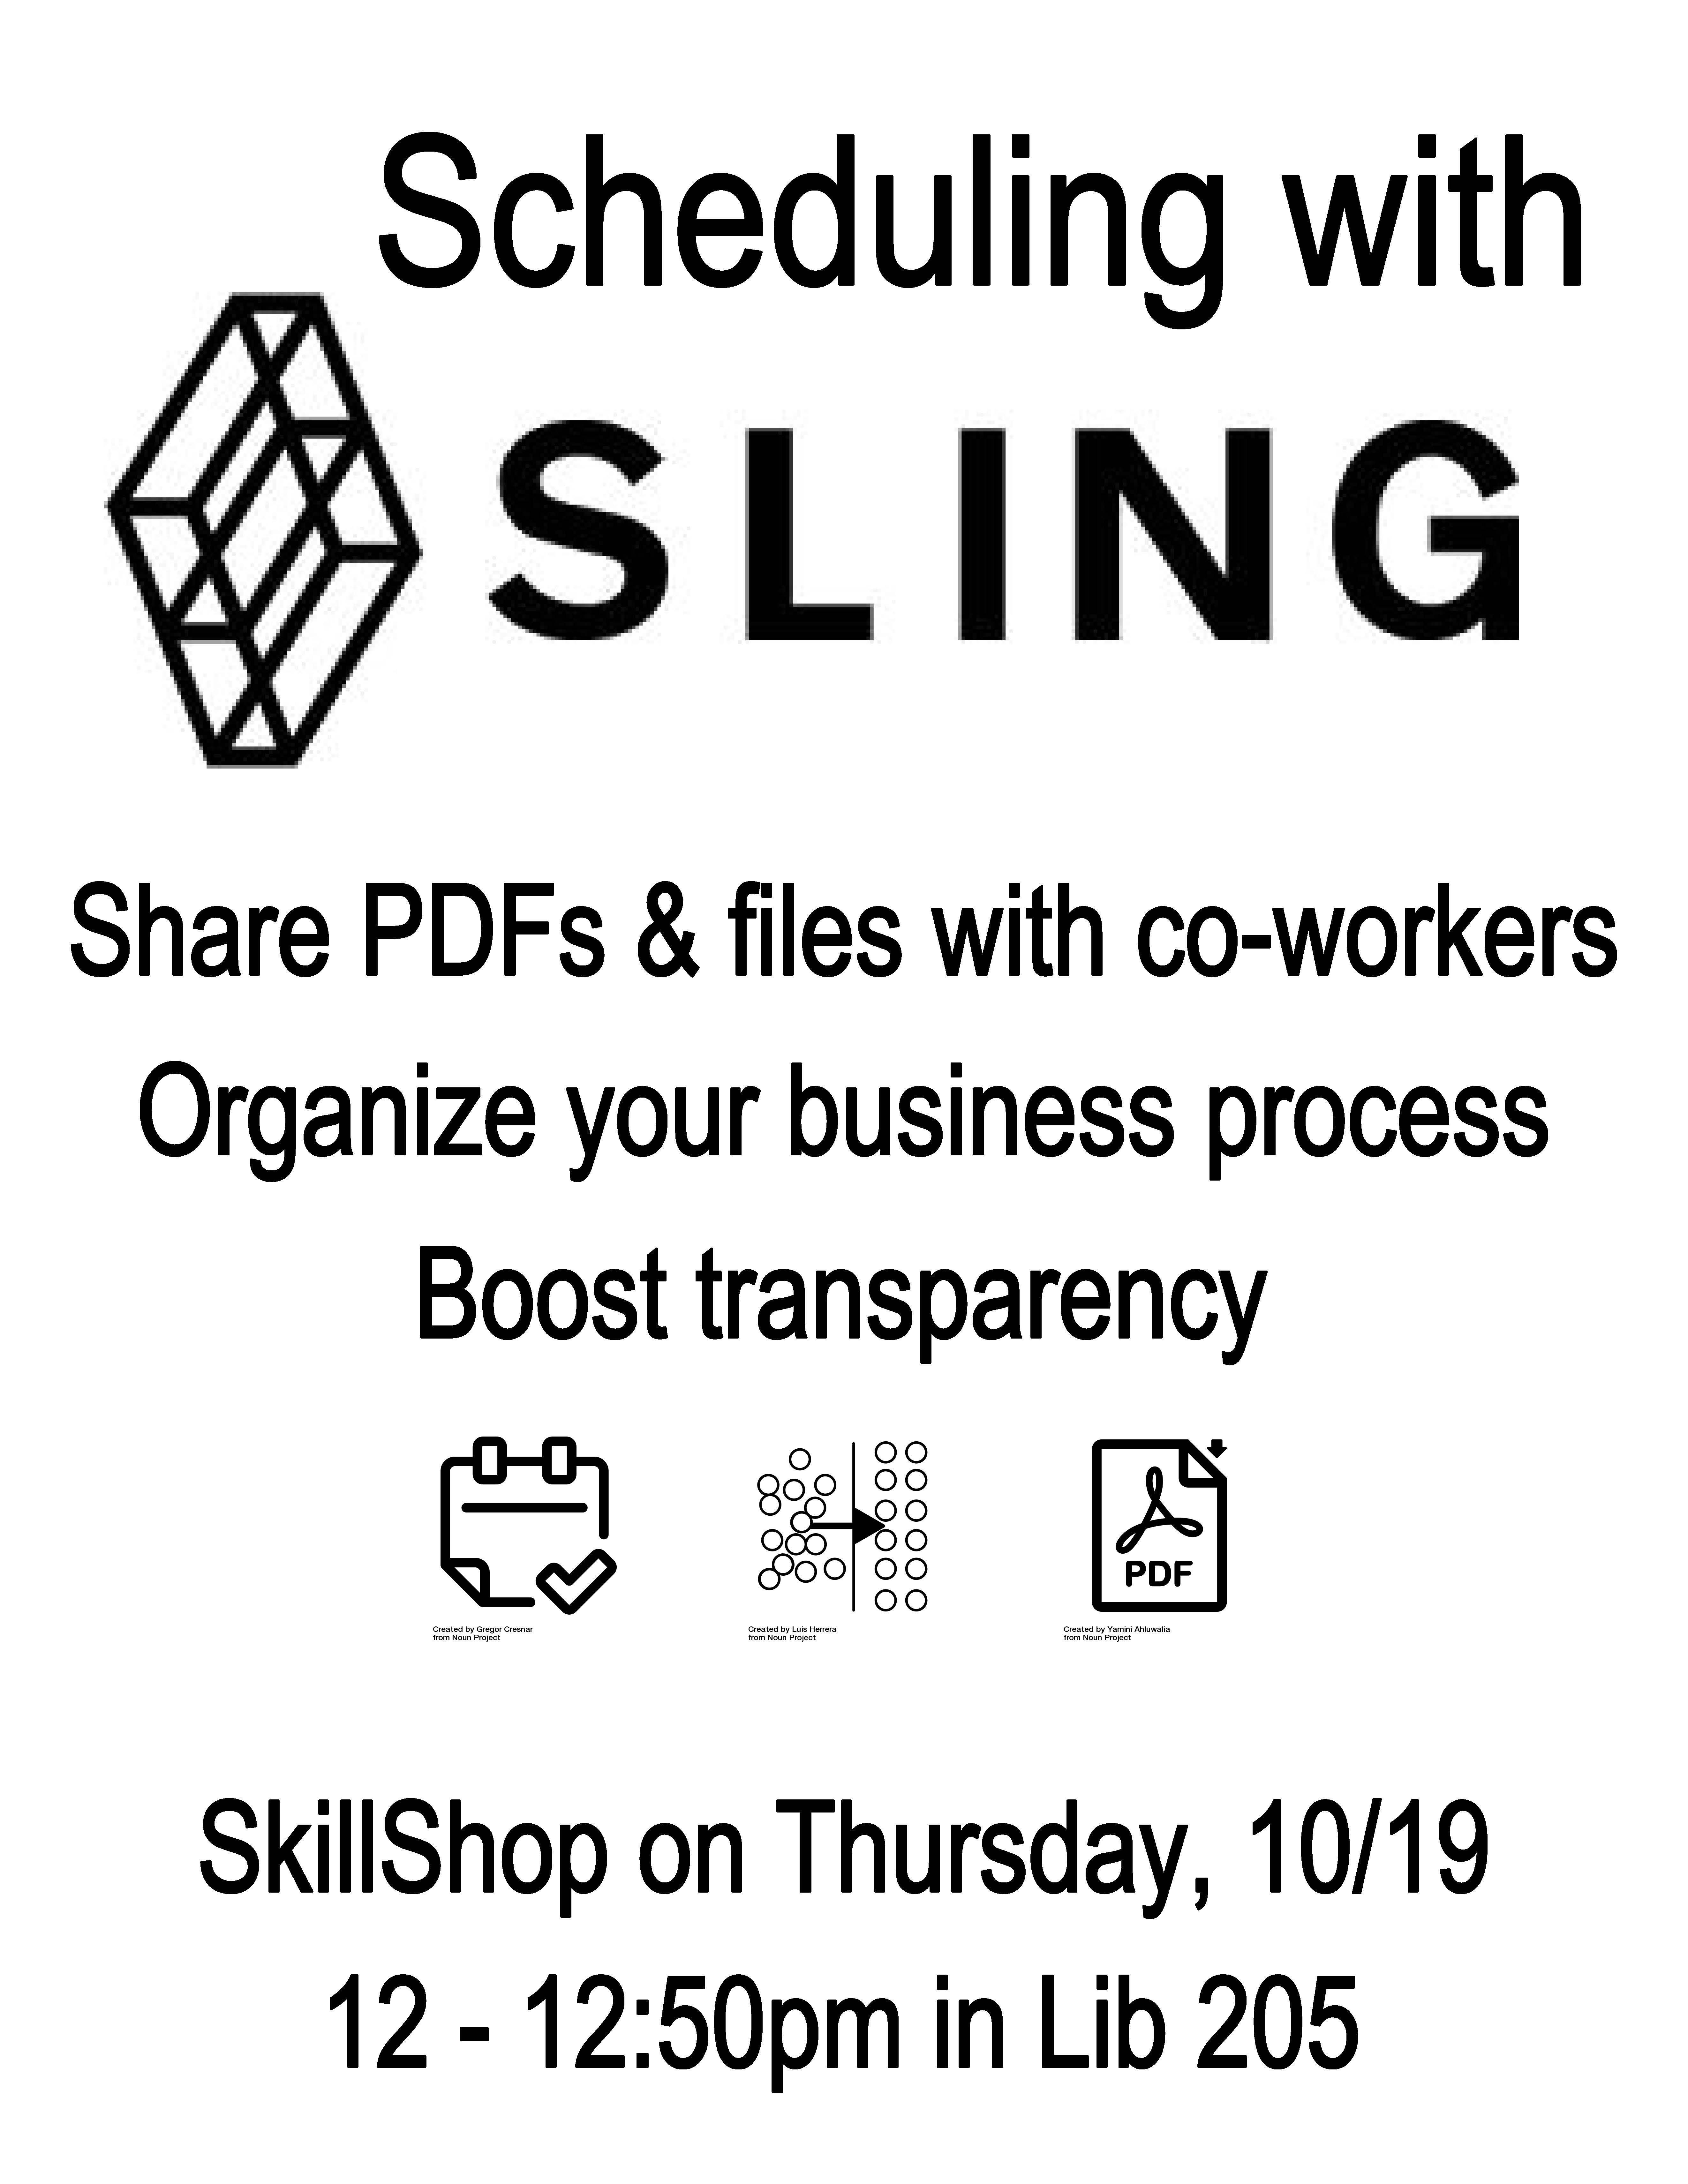 Push/Pull Scheduling with Sling